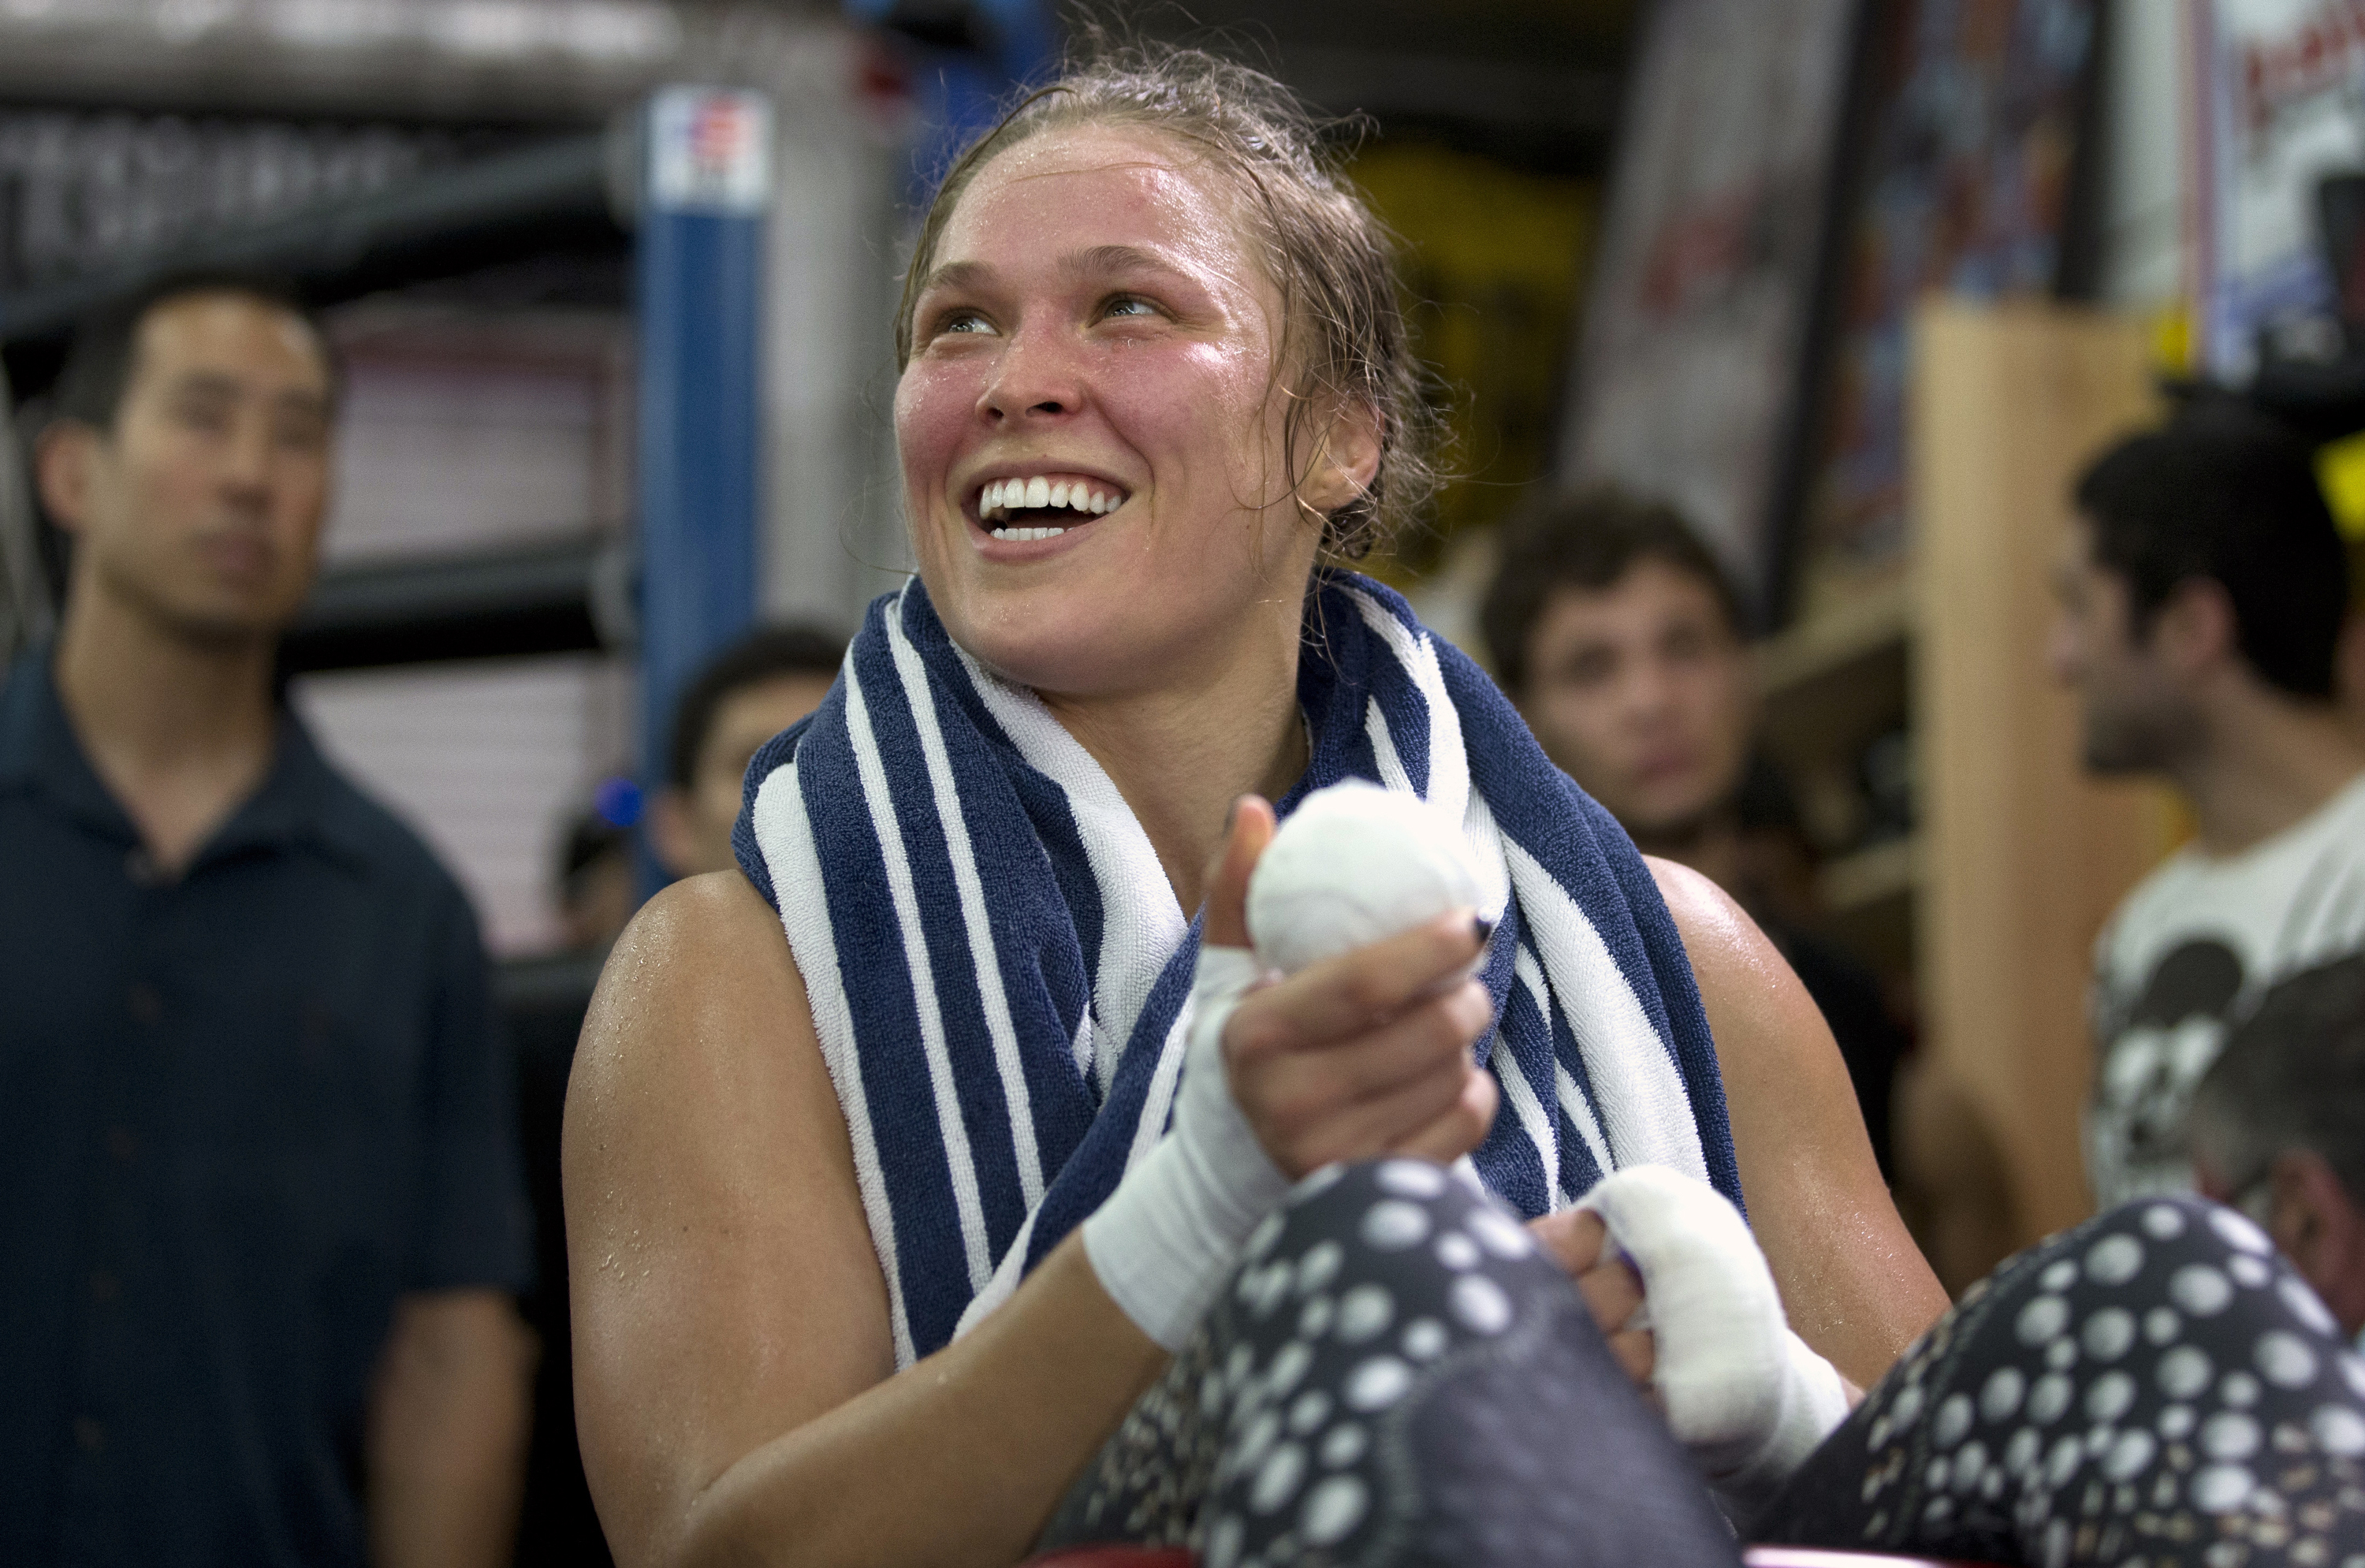 Mixed martial arts fighter Ronda Rousey smiles during her workout at Glendale Fighting Club, in Glendale, Calif. on July 15, 2015.